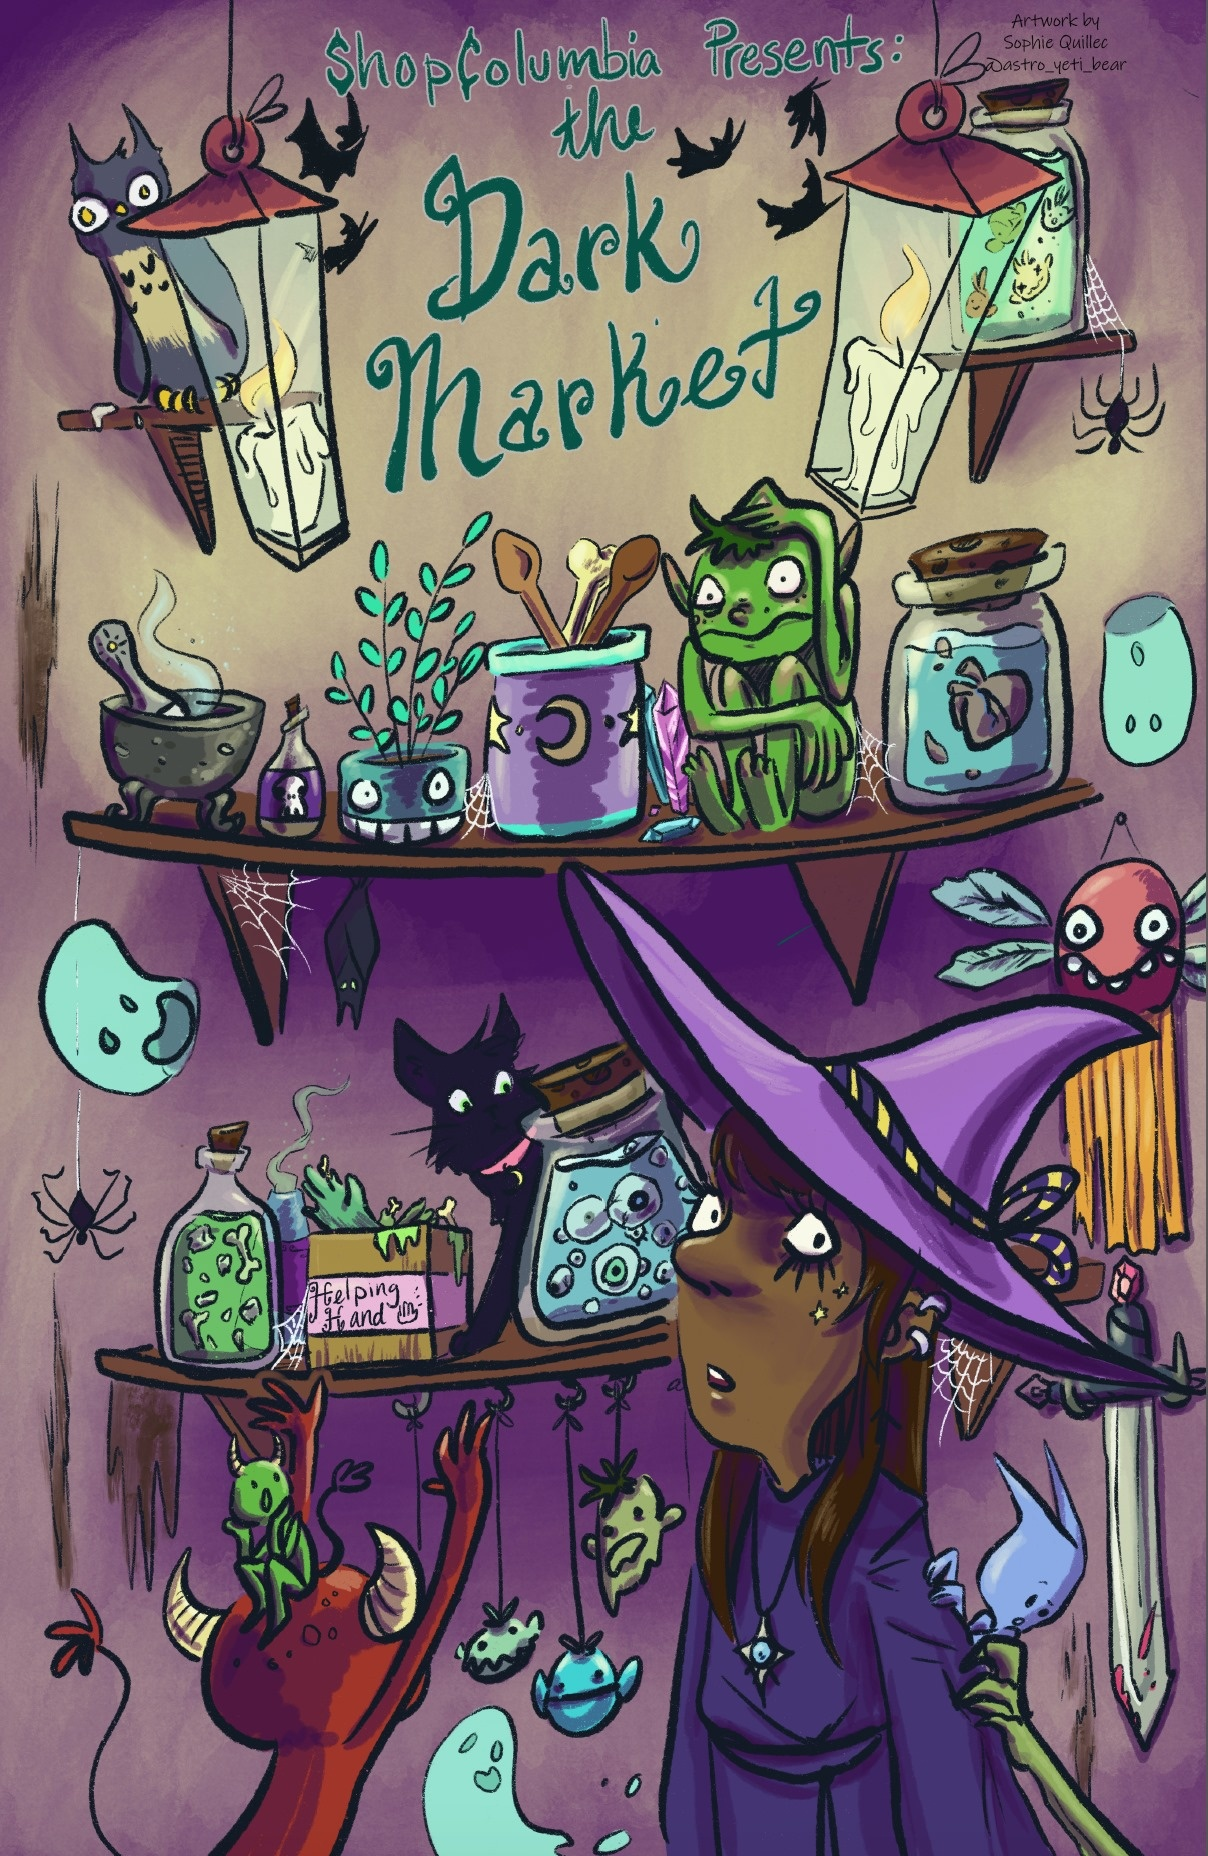 Spotlight Event: Dark Market